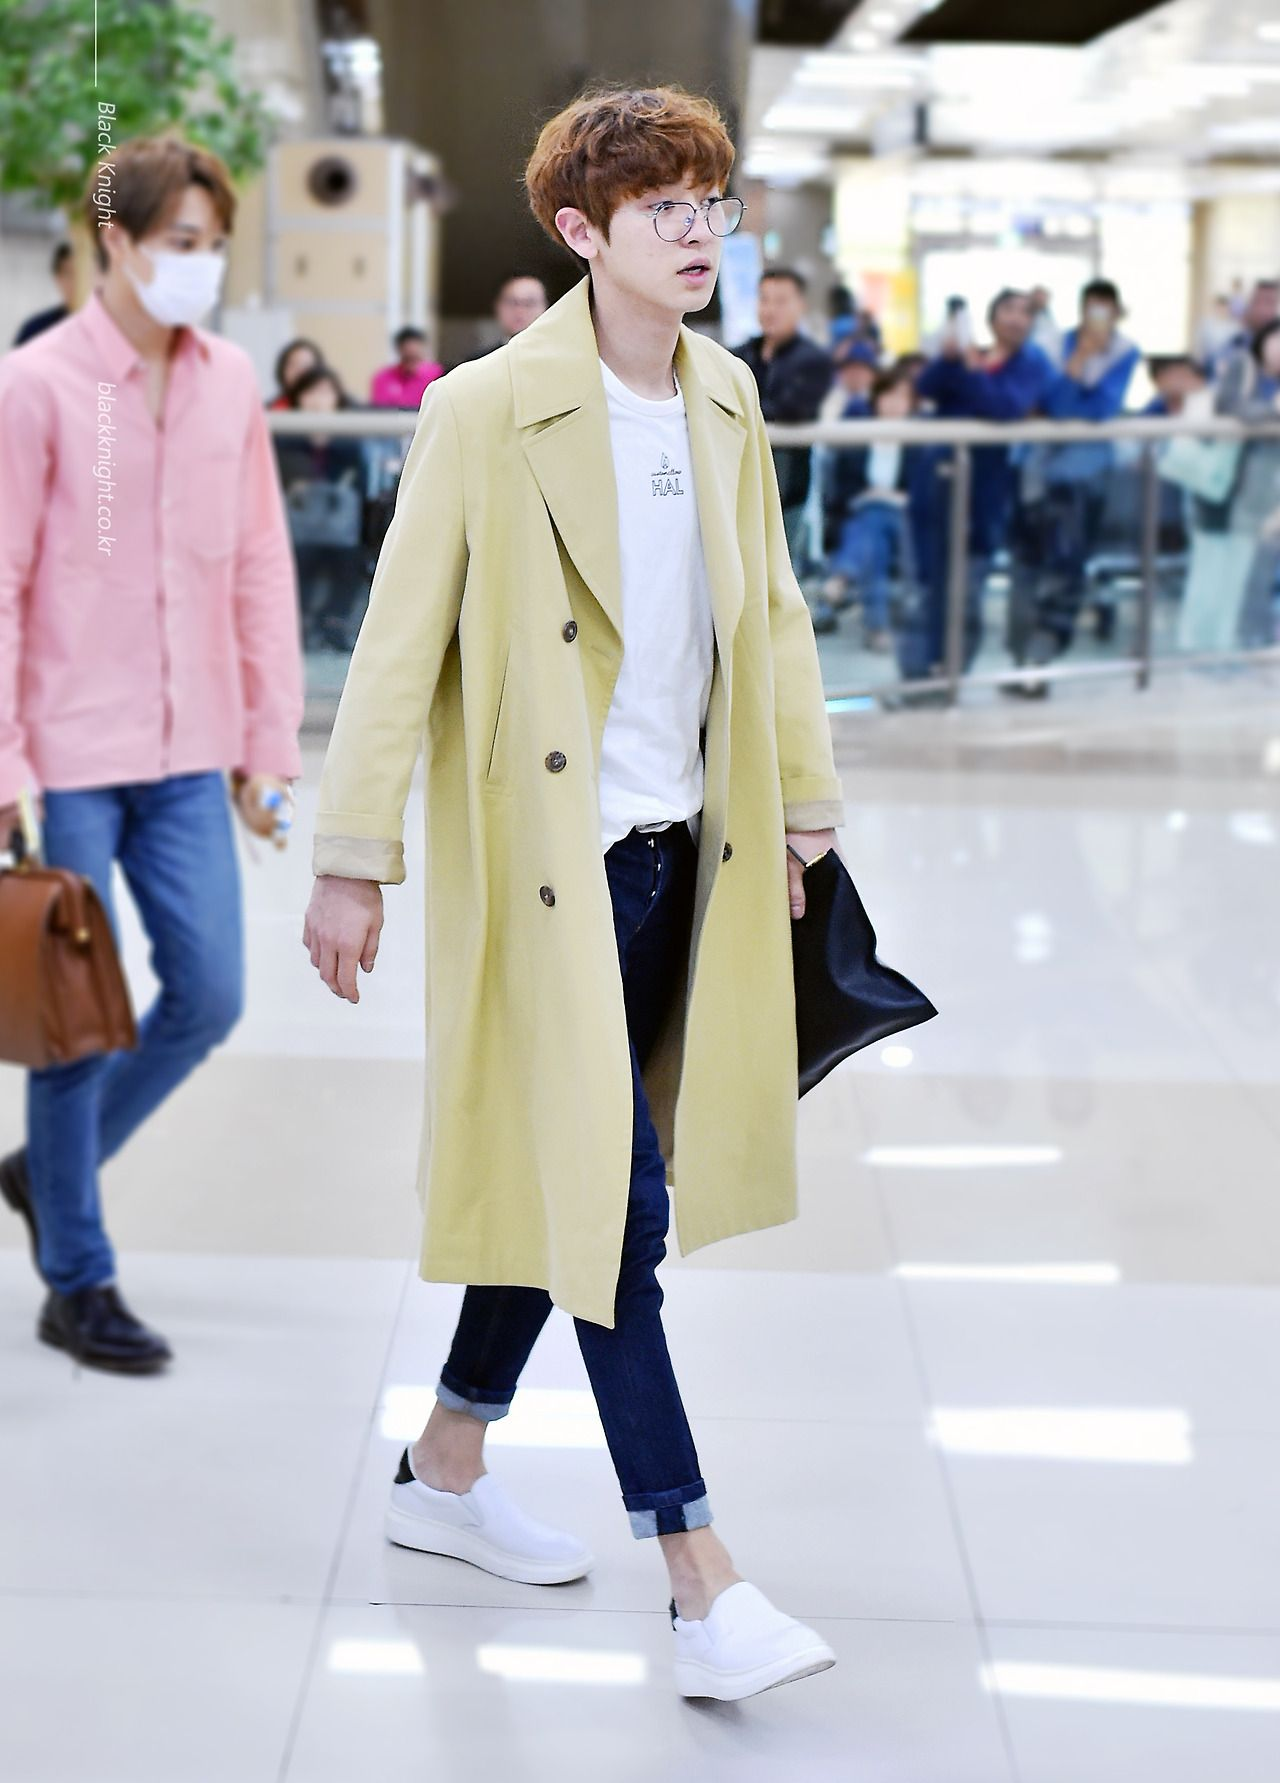 Pin By Rachel Walker On Chanyeol Korean Fashion Kpop Kpop Fashion Male Exo Airport Fashion Sehun